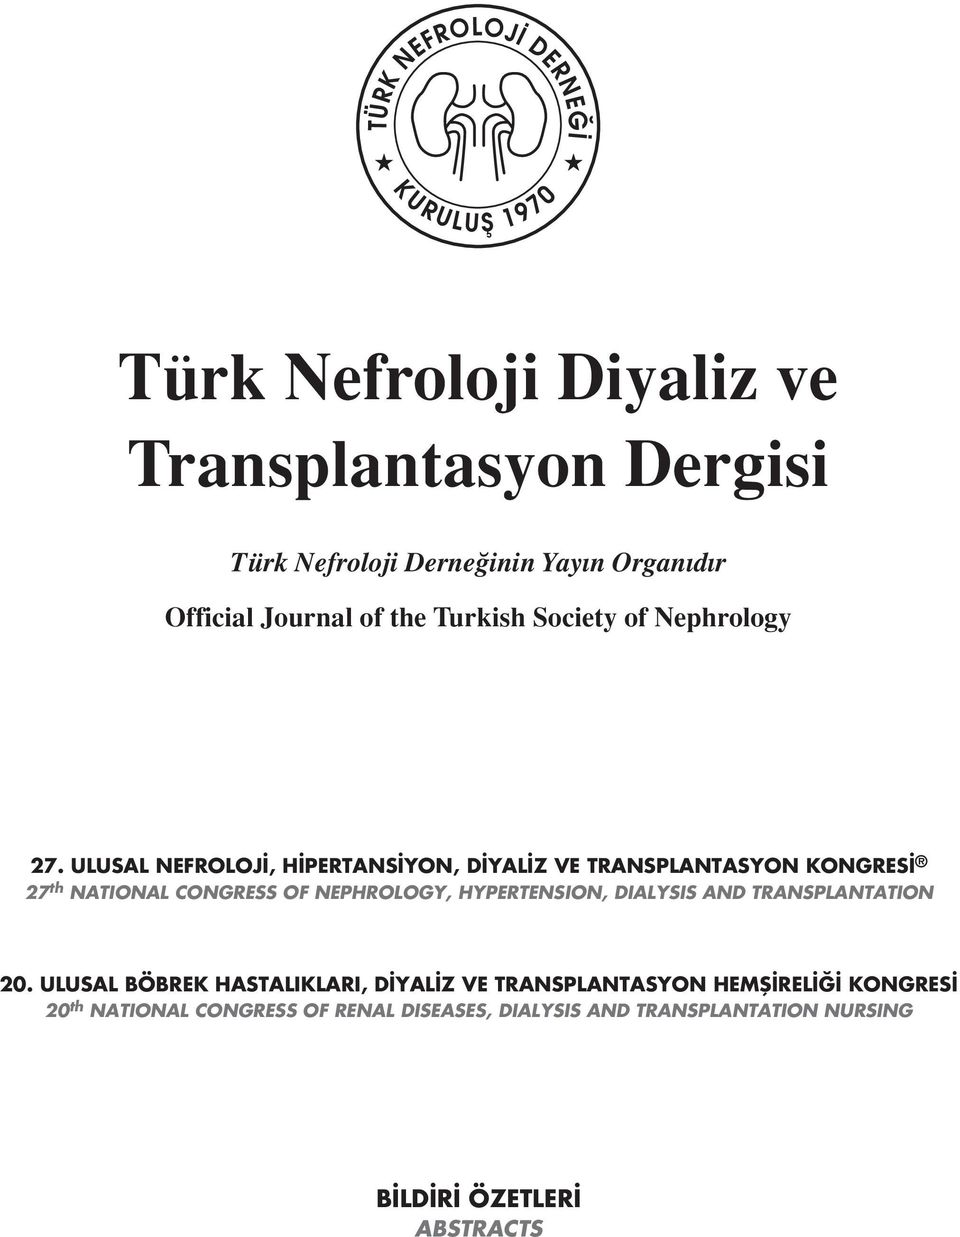 ULUSAL NEFROLOJ, H PERTANS YON, D YAL Z VE TRANSPLANTASYON KONGRES 27 th NATIONAL CONGRESS OF NEPHROLOGY, HYPERTENSION,